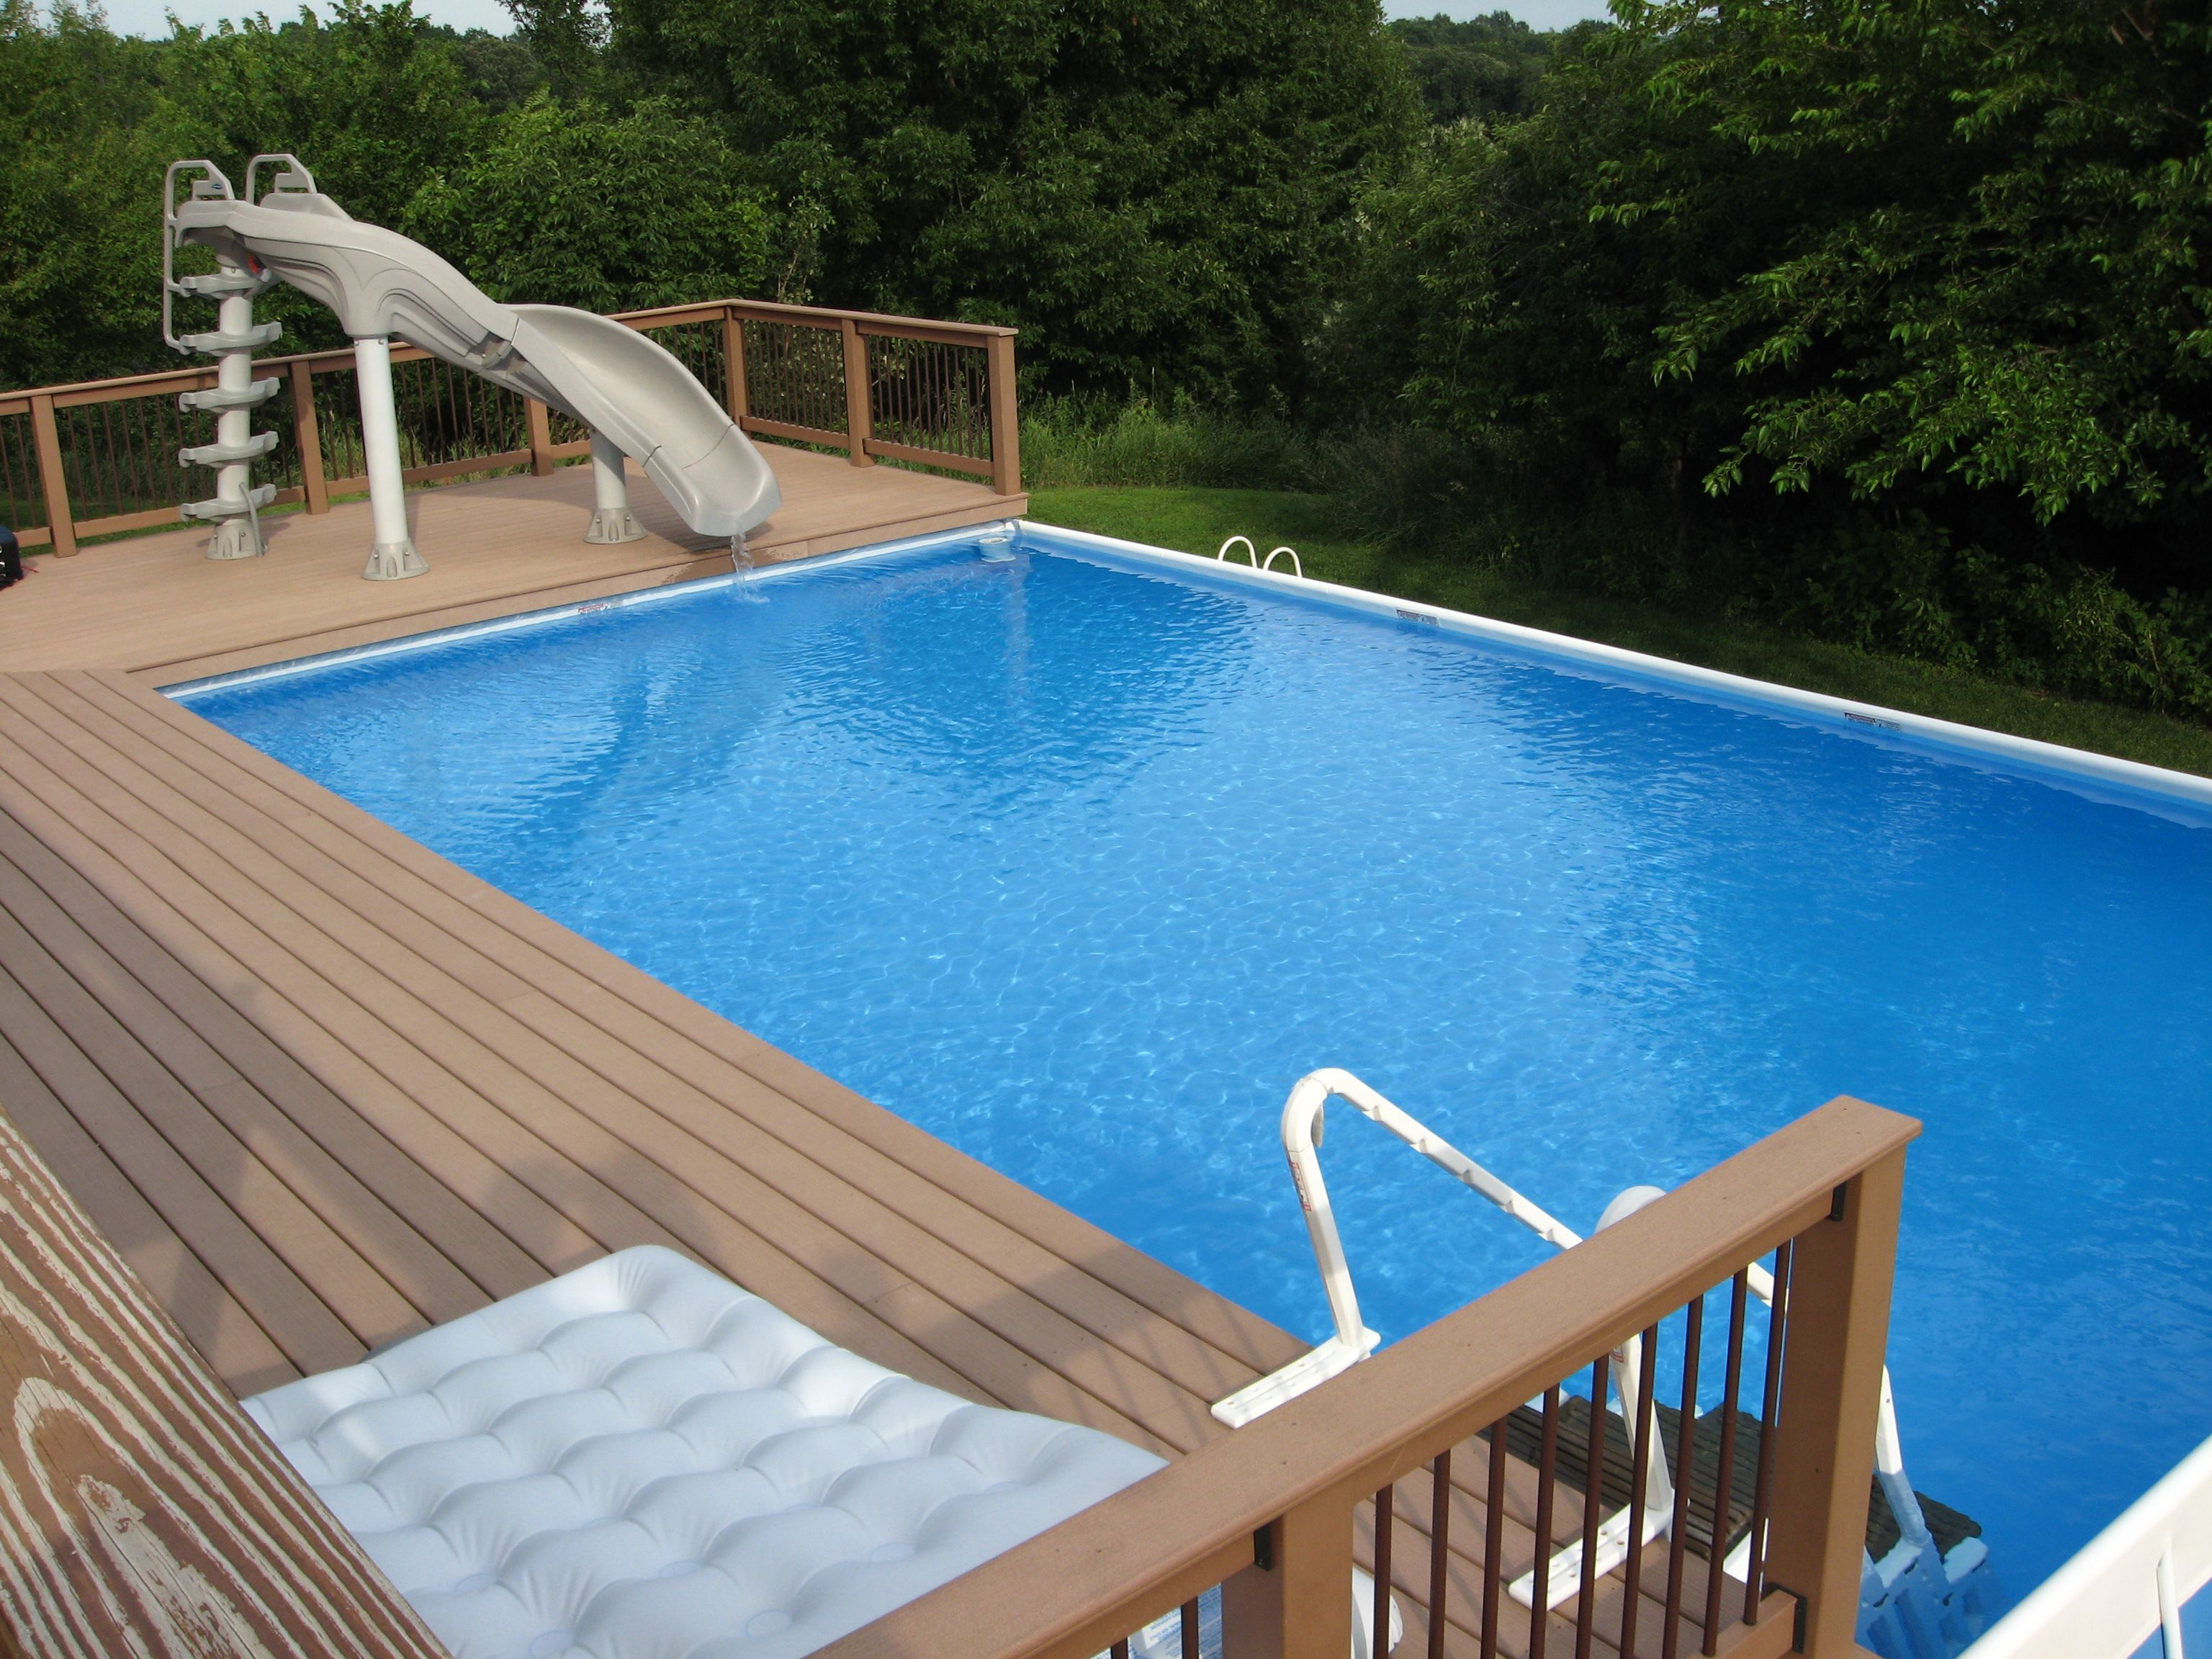 Above ground pool decks idea for your backyard decor beautiful above ground pool custom decks - Swimming pool decks above ground designs ...